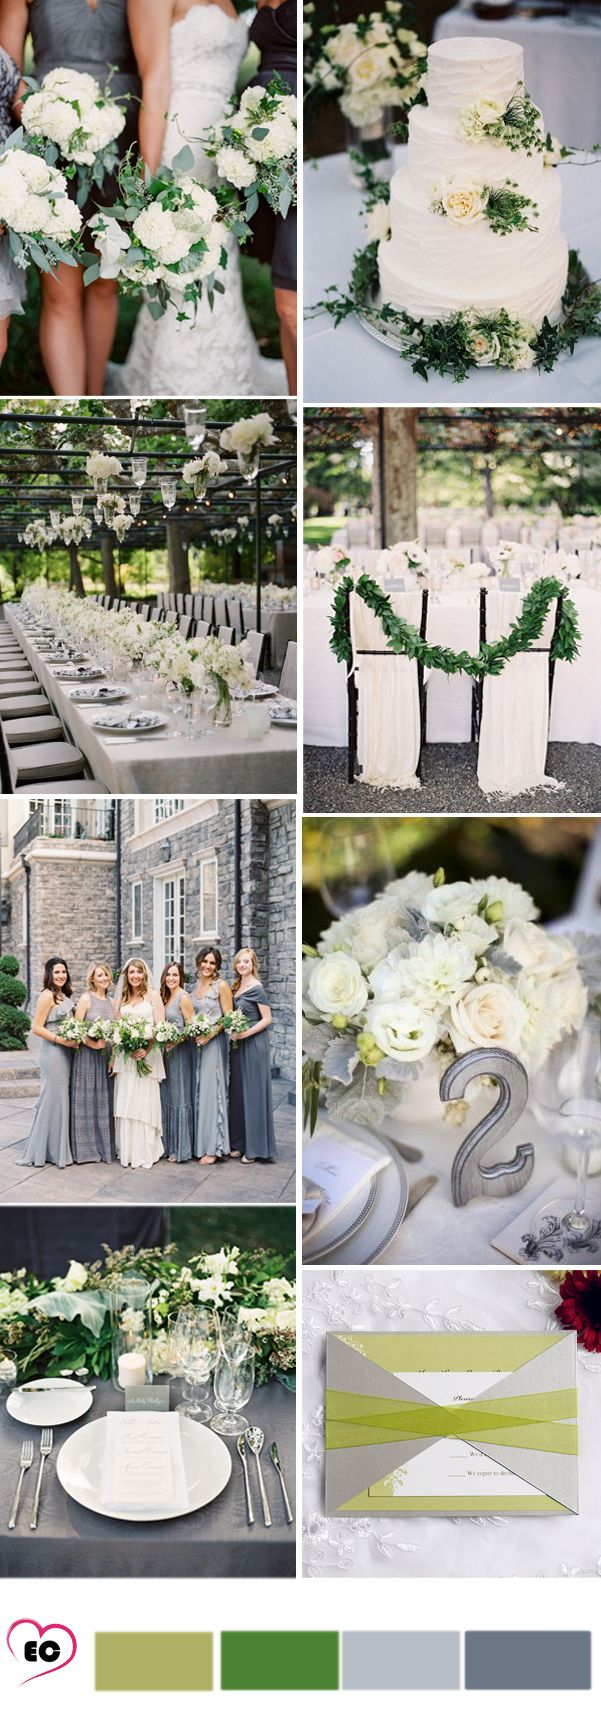 grey and green wedding idea